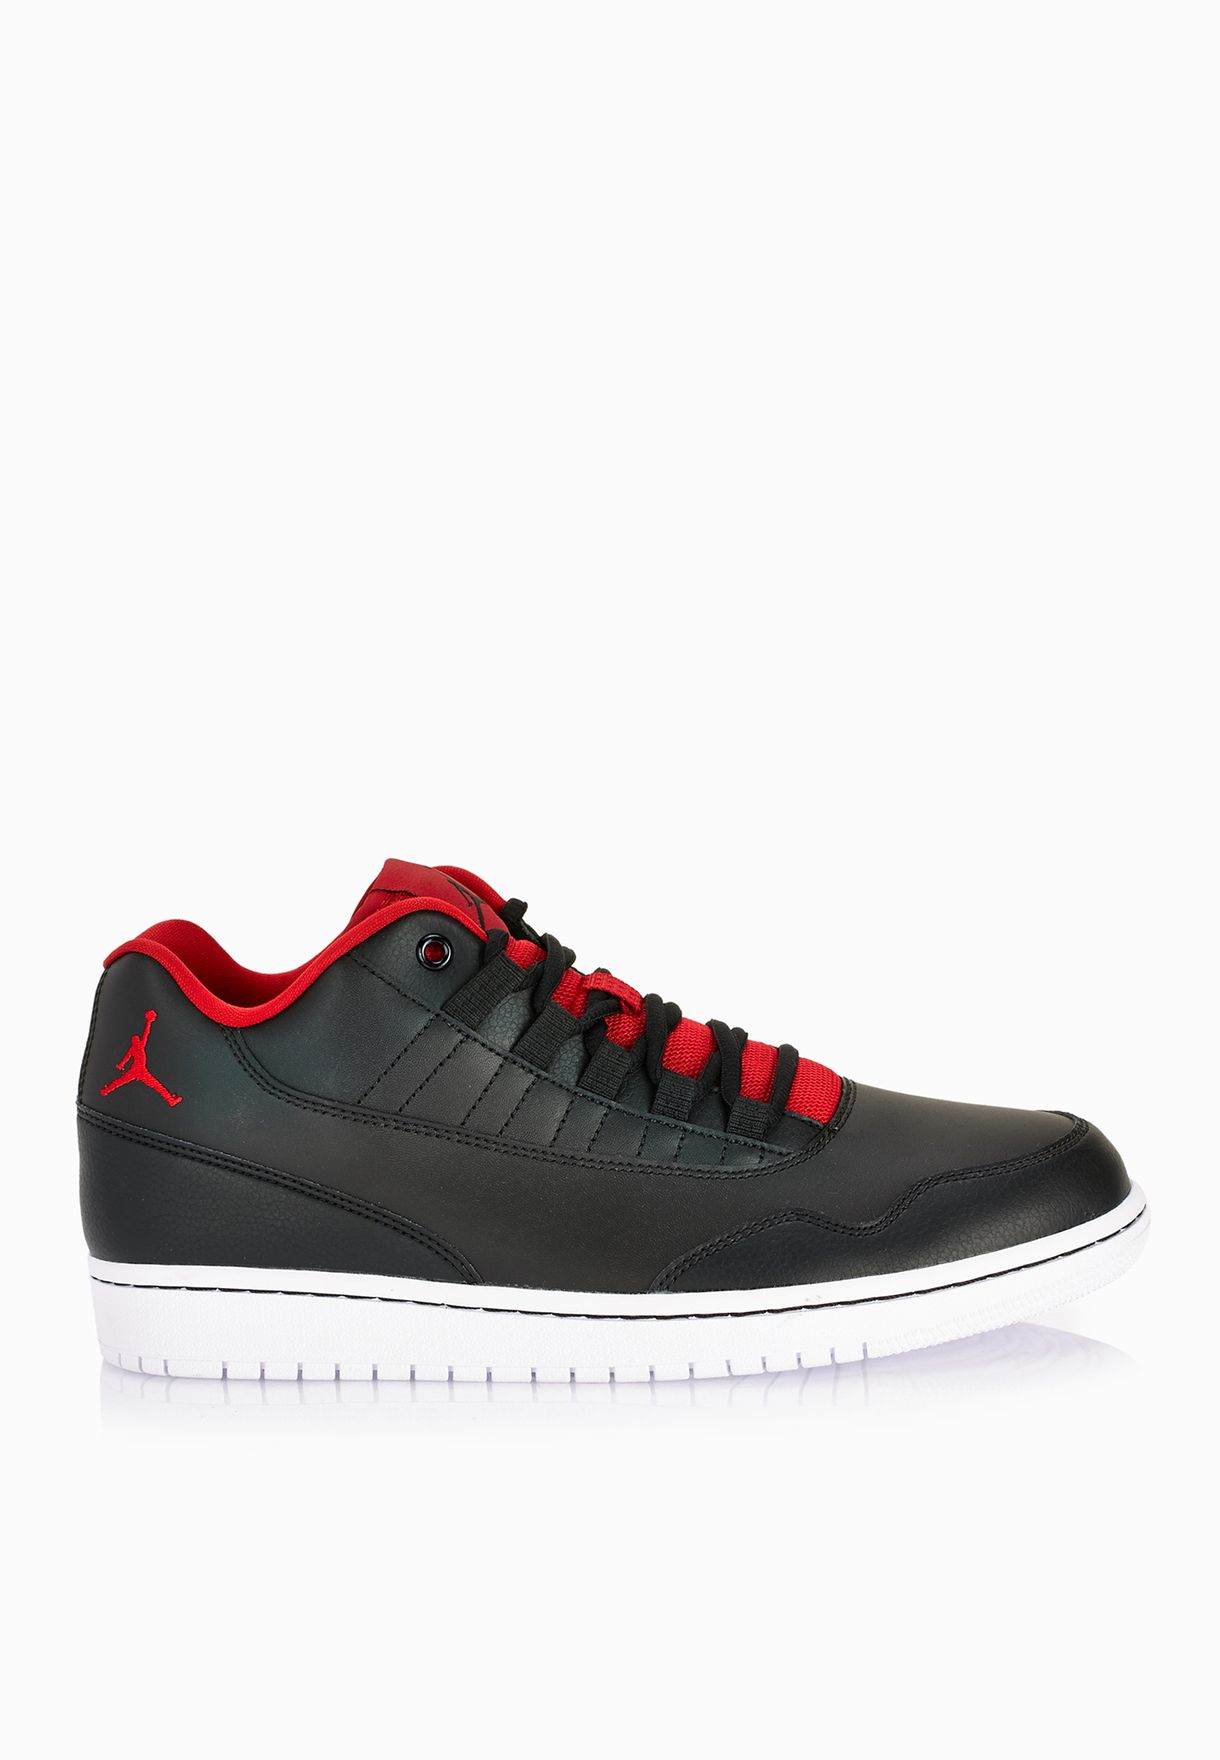 5e58b1f9b61 Shop Nike black Jordan Executive Low 833913-001 for Men in Oman ...